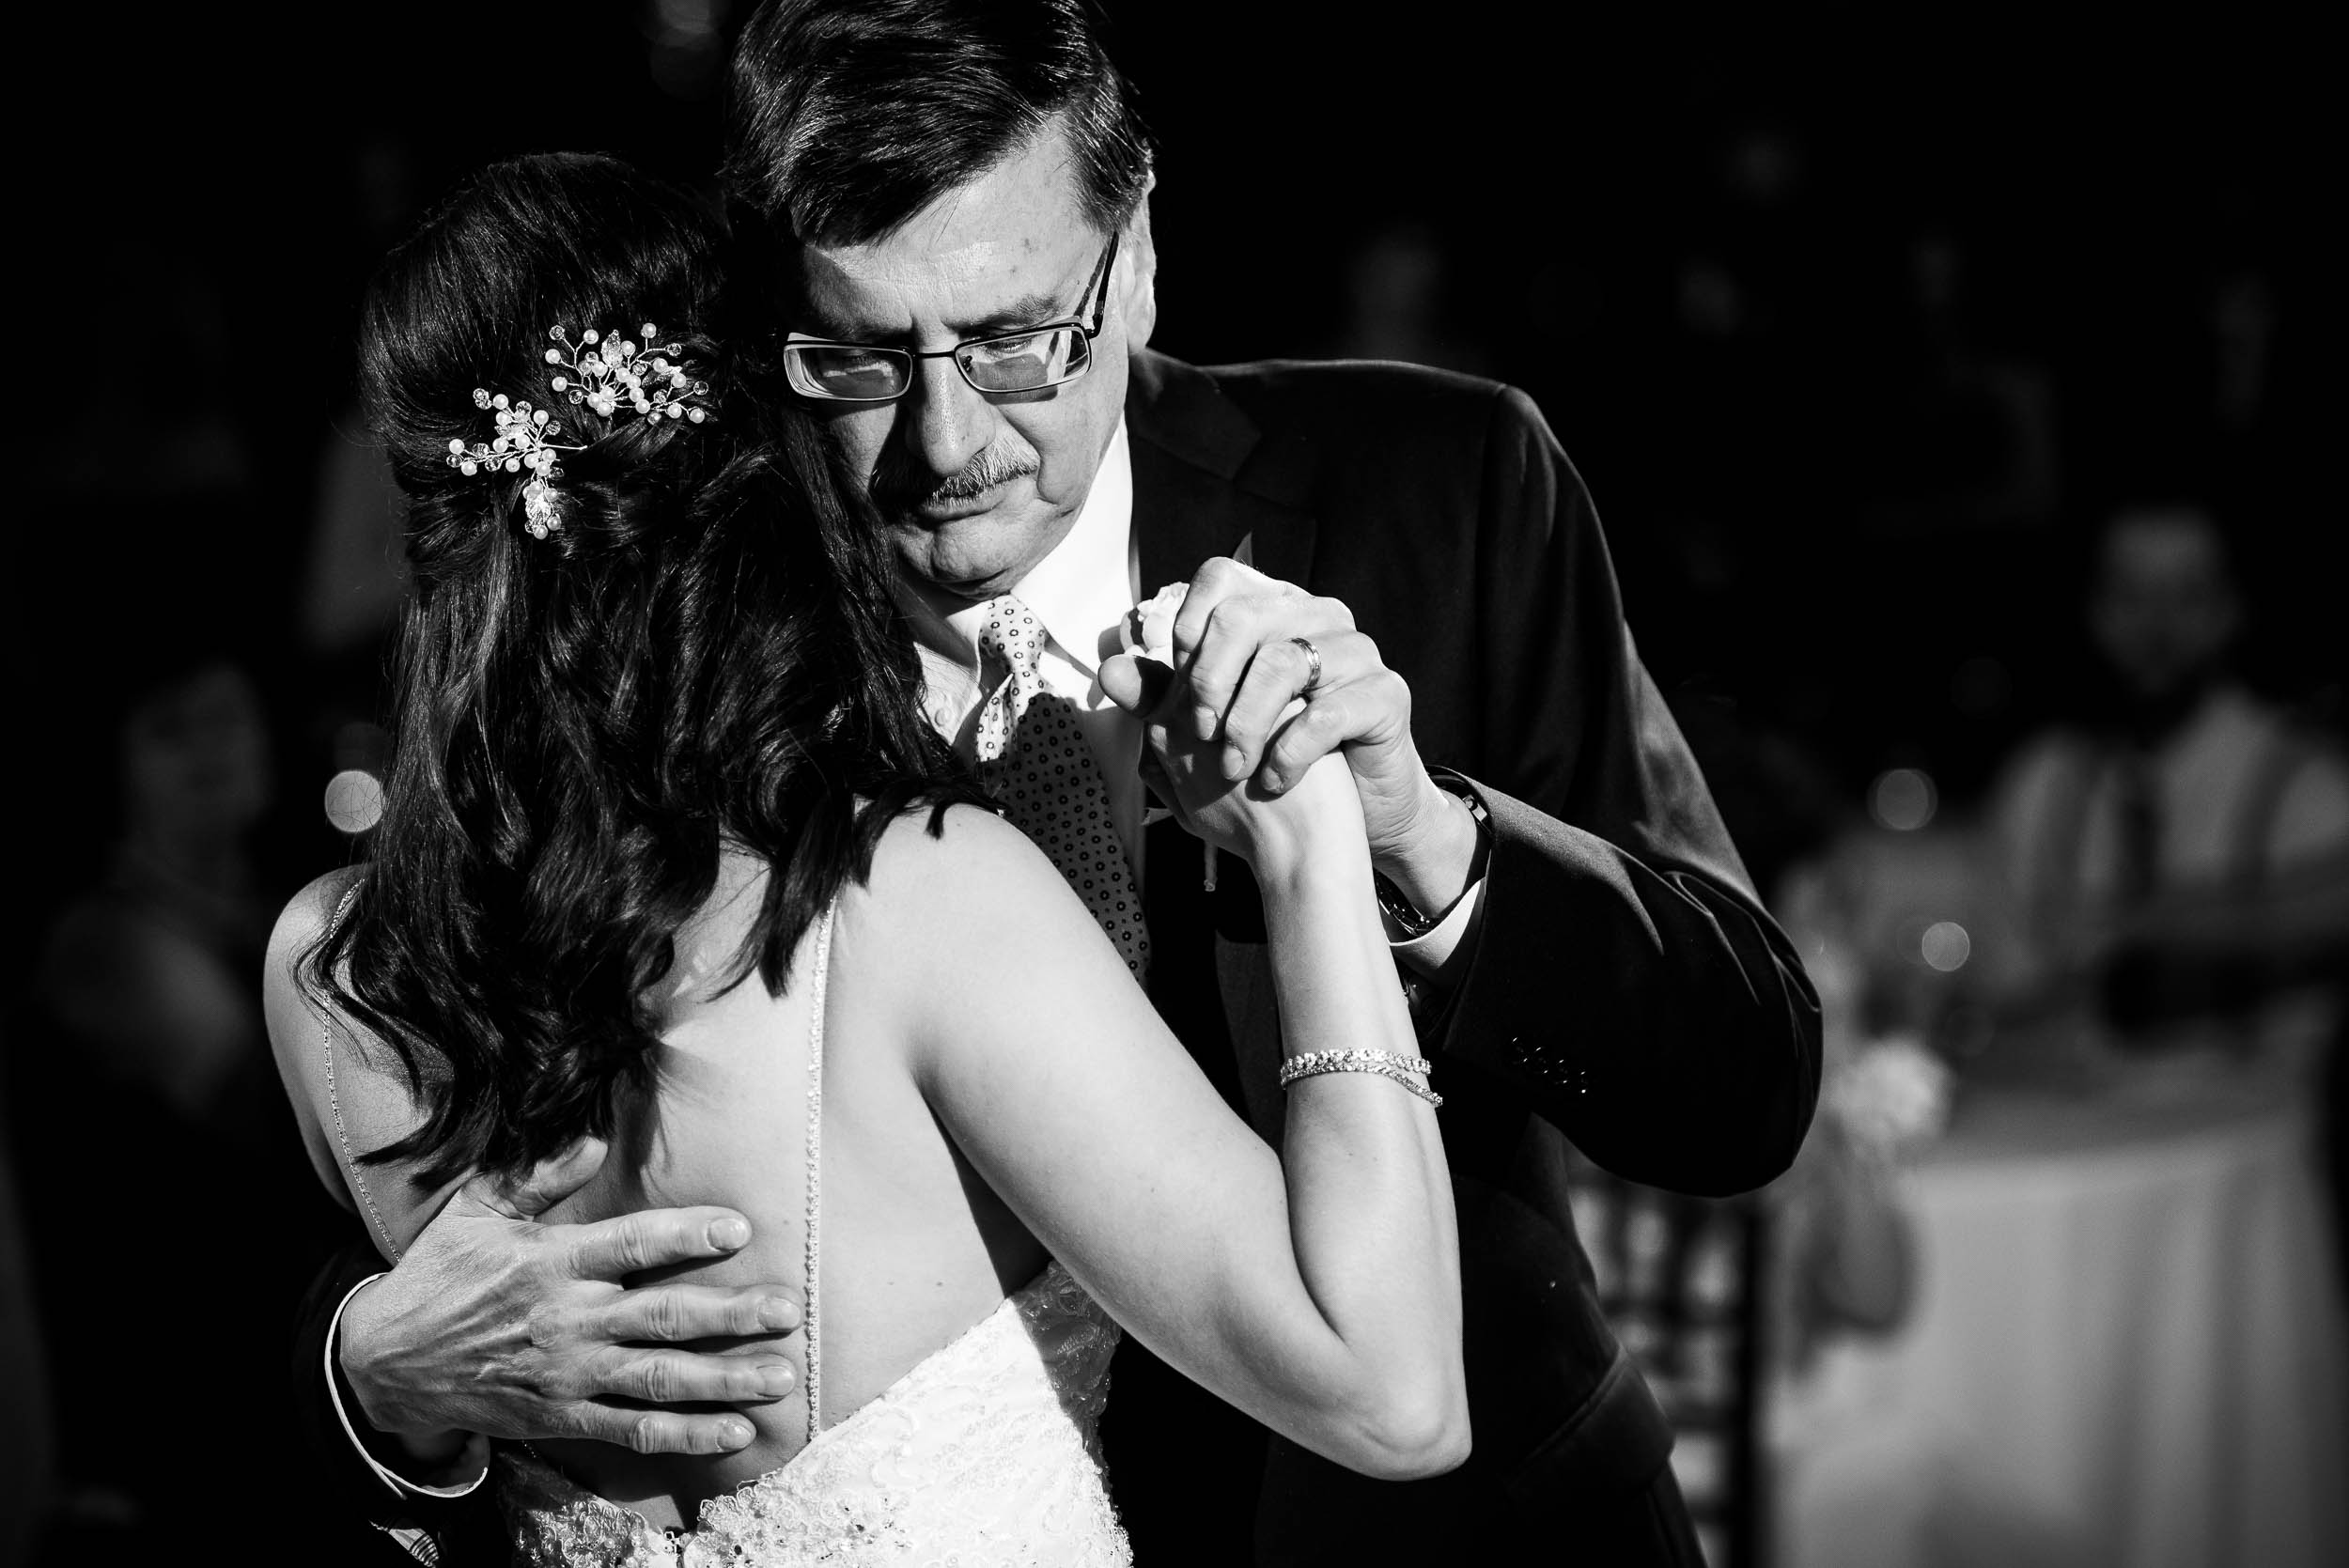 Father/daughter dance at Grand Geneve Resort Fall Chicago Wedding captured by J. Brown Photography. Visit jbrownphotography.com for more wedding inspiration!